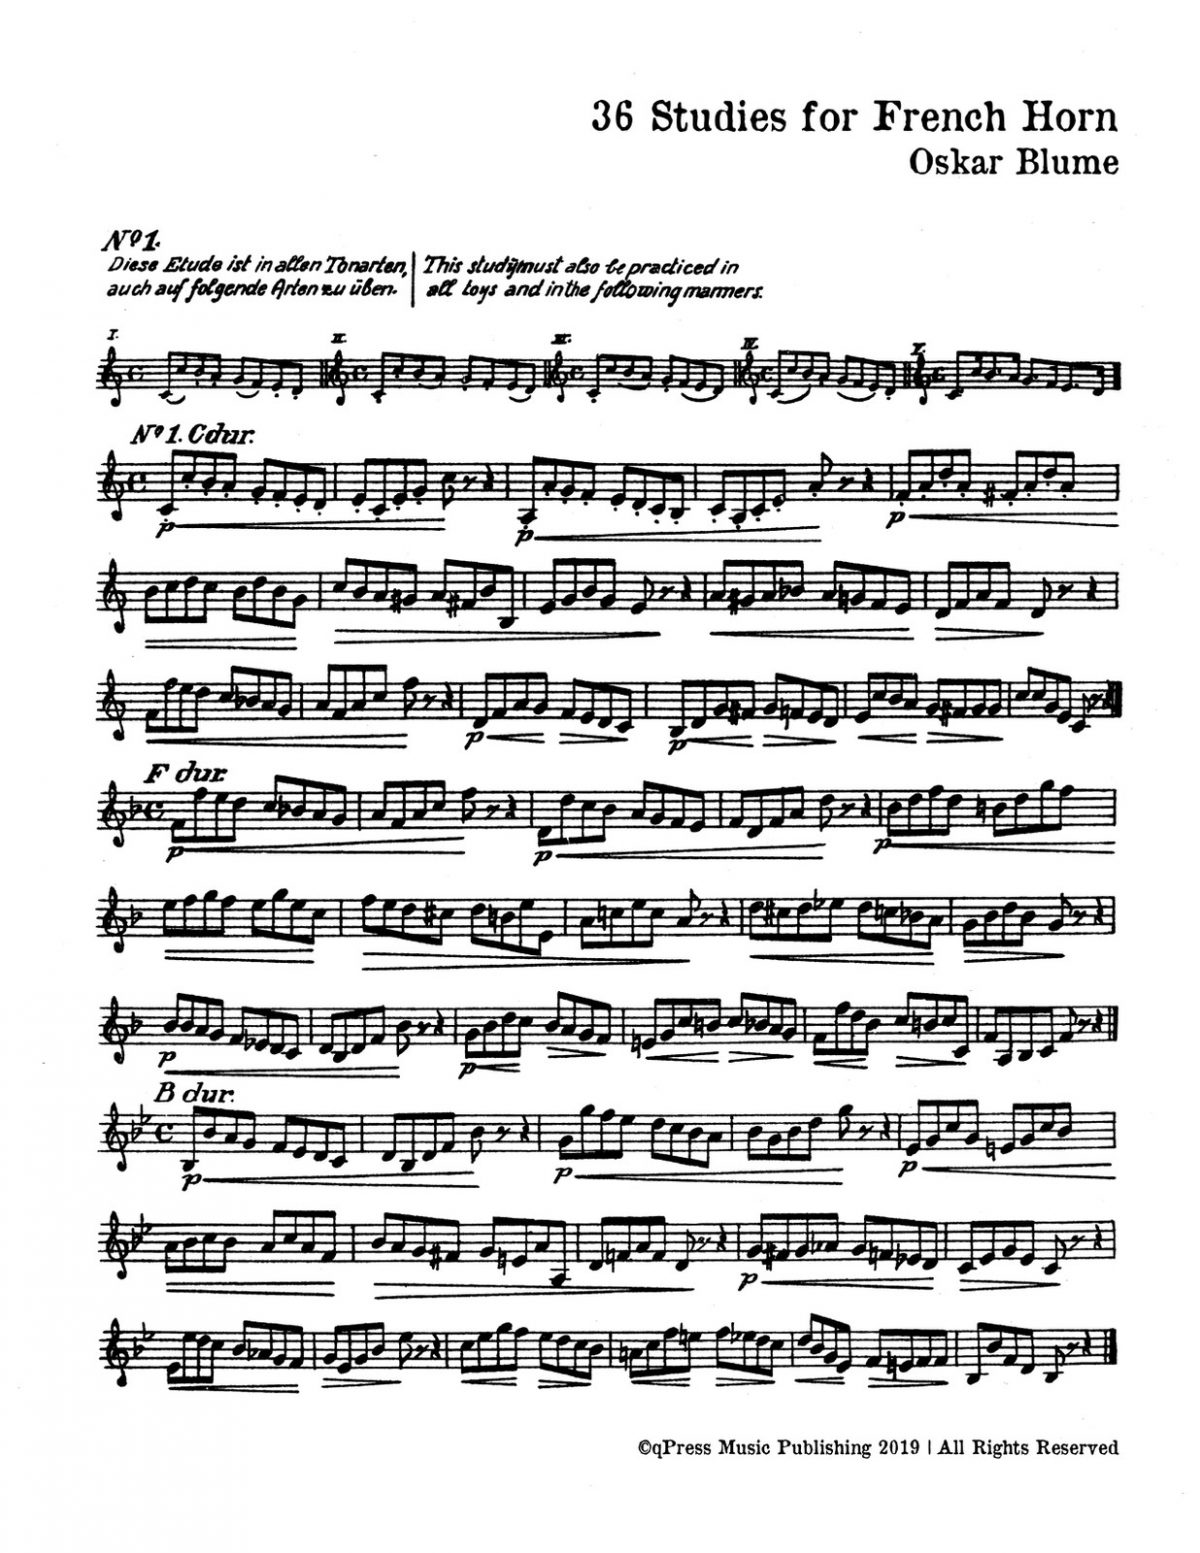 Blume, 36 Studies for French Horn-p03